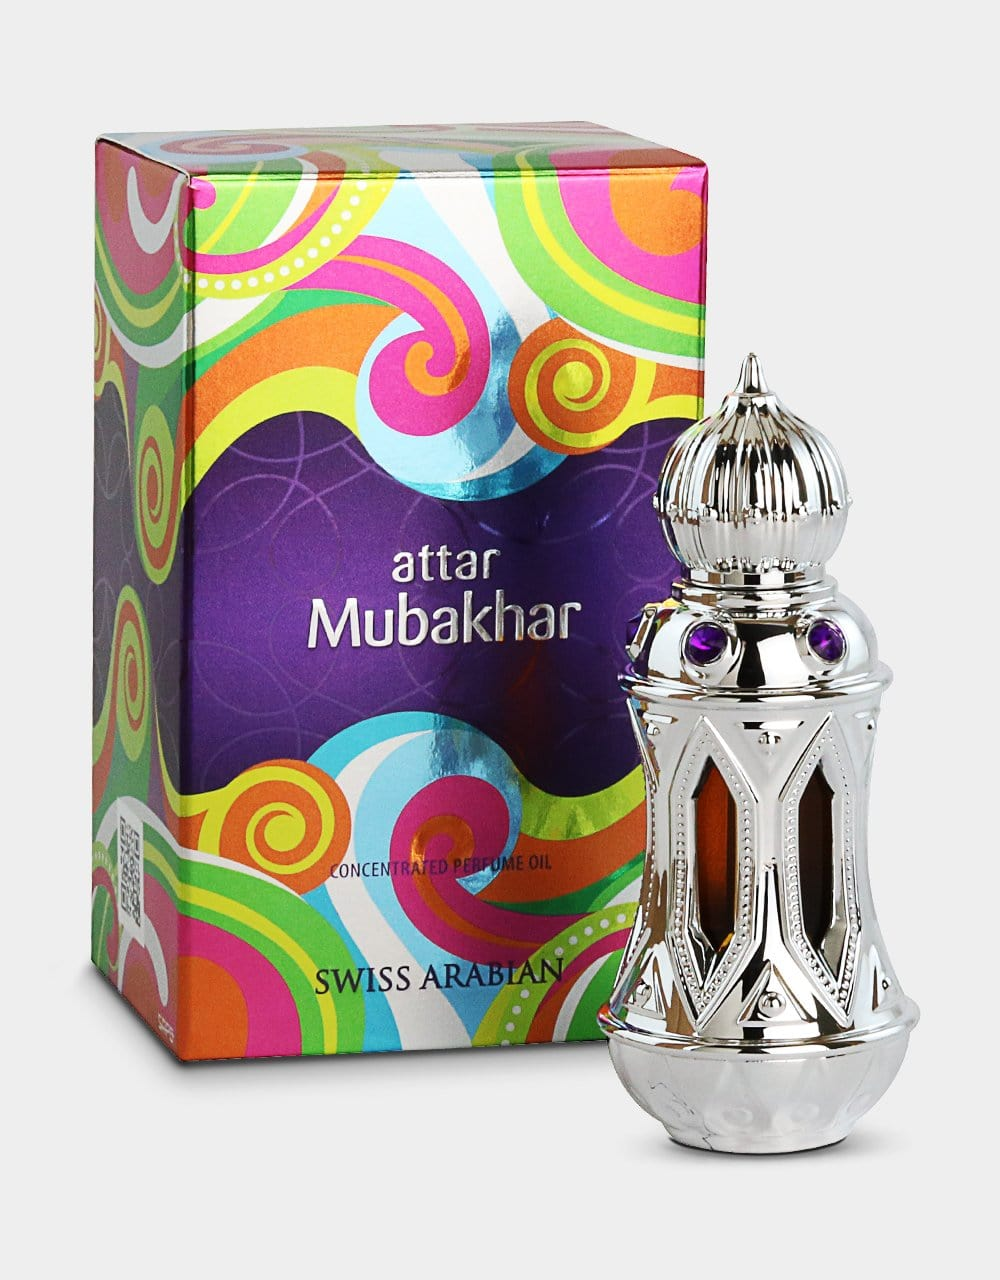 Swiss Arabian Attar Mubakhar Concentrated Perfume Oil 20ml